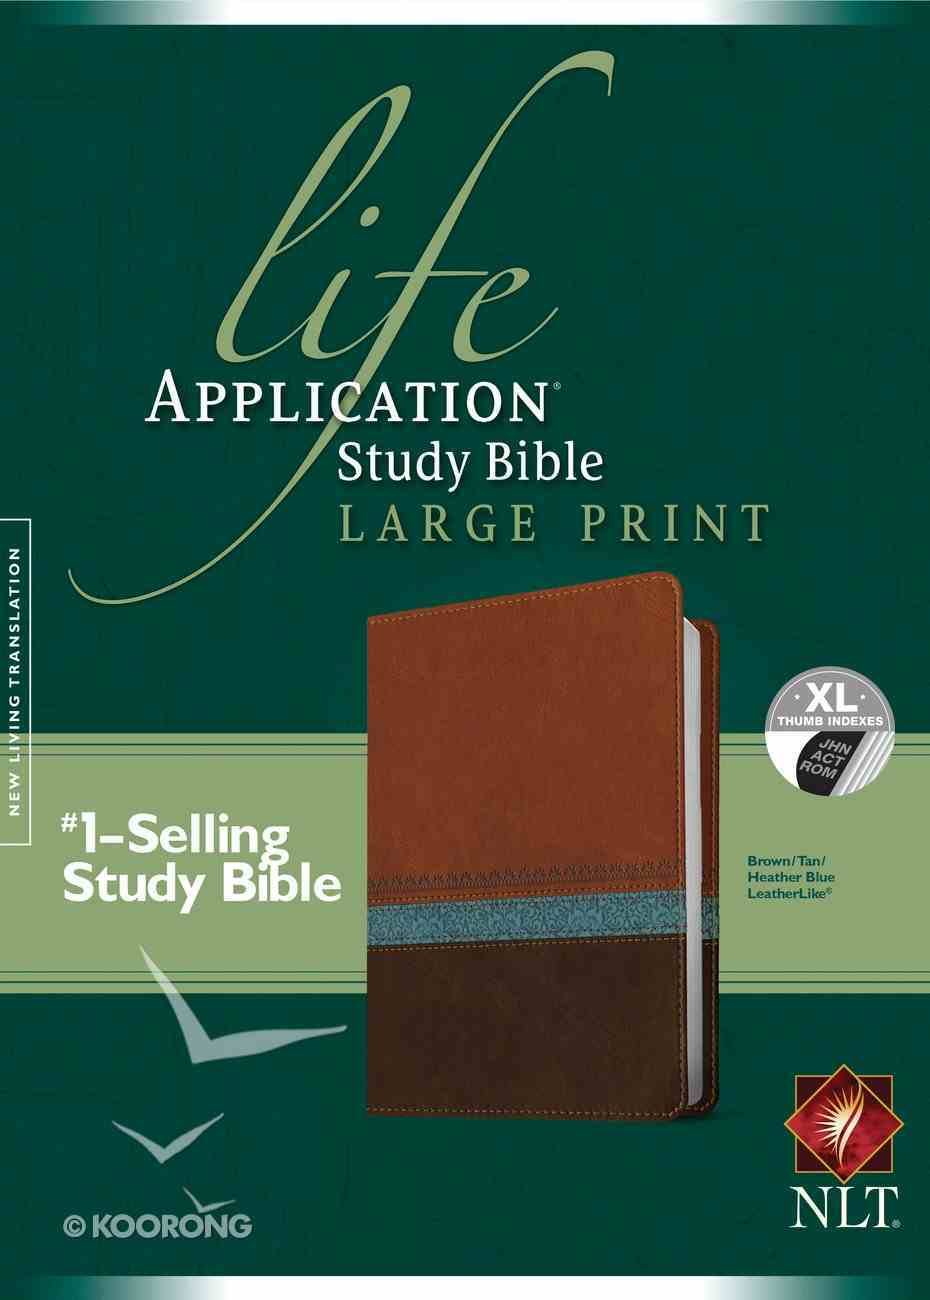 NLT Life Application Study Bible Indexed Large Print Brown Tan Heather Blue (Red Letter Edition) Imitation Leather